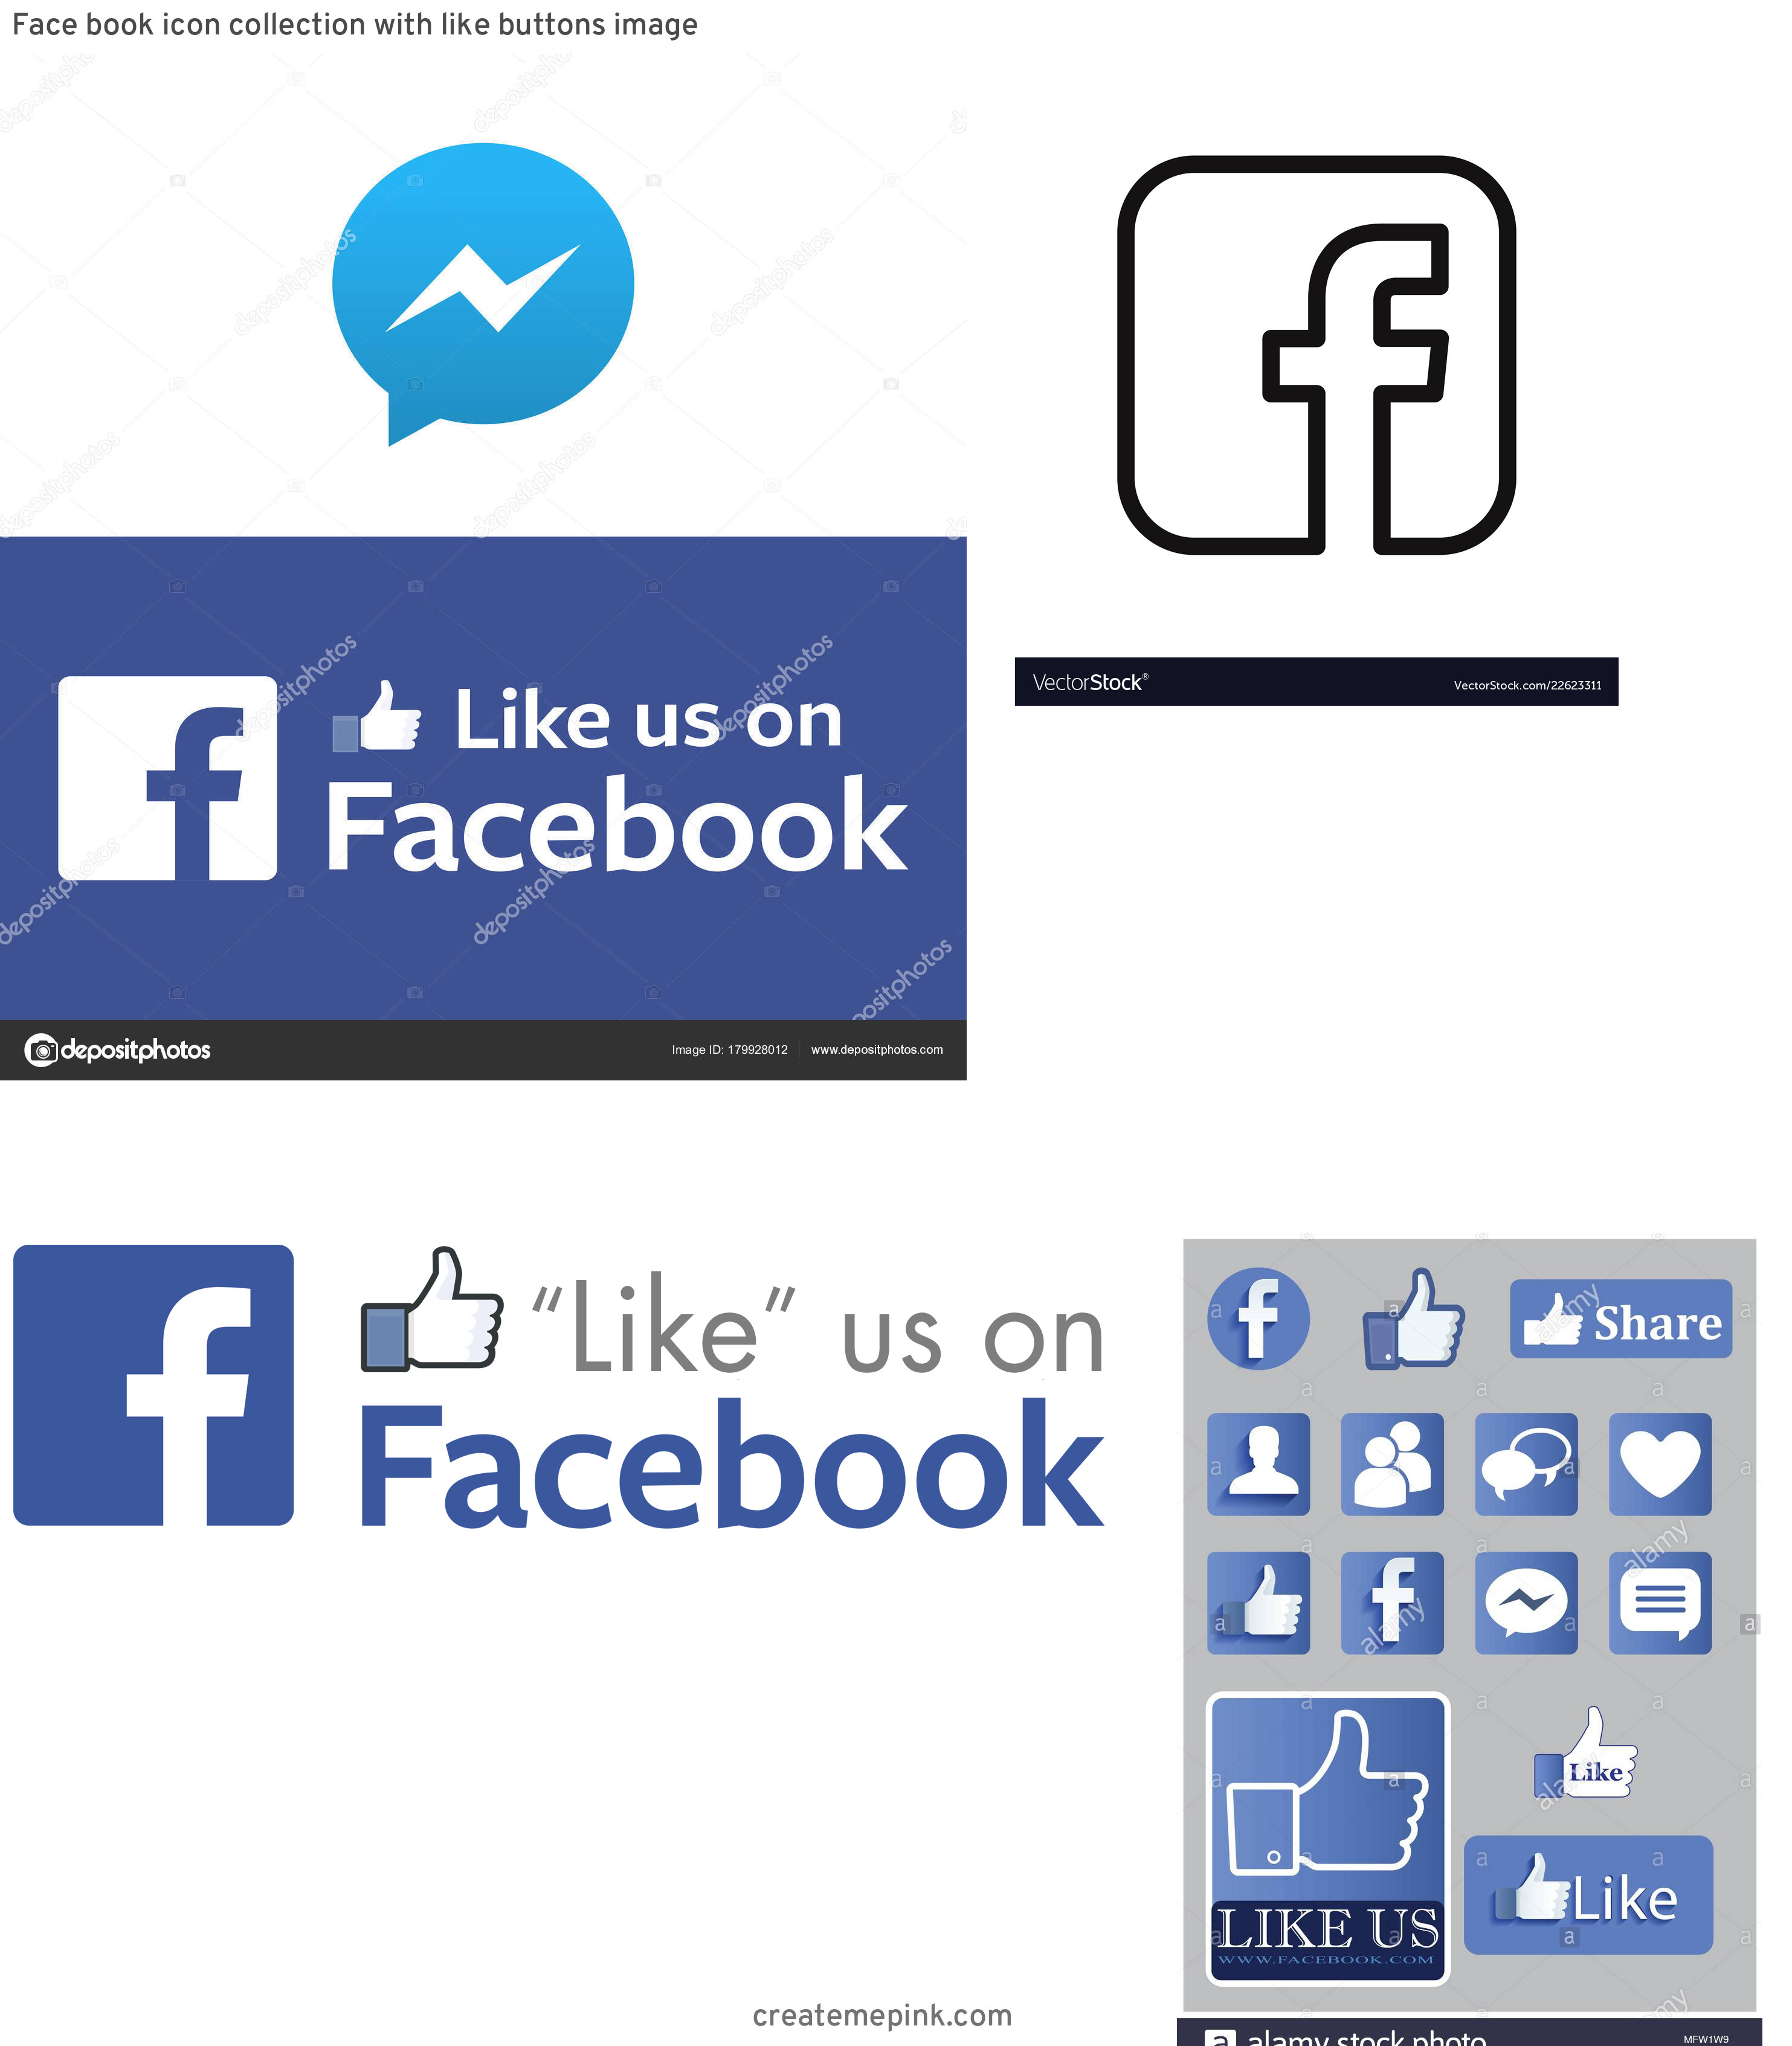 Official Like Us On Facebook Logo Vector: Face Book Icon Collection With Like Buttons Image